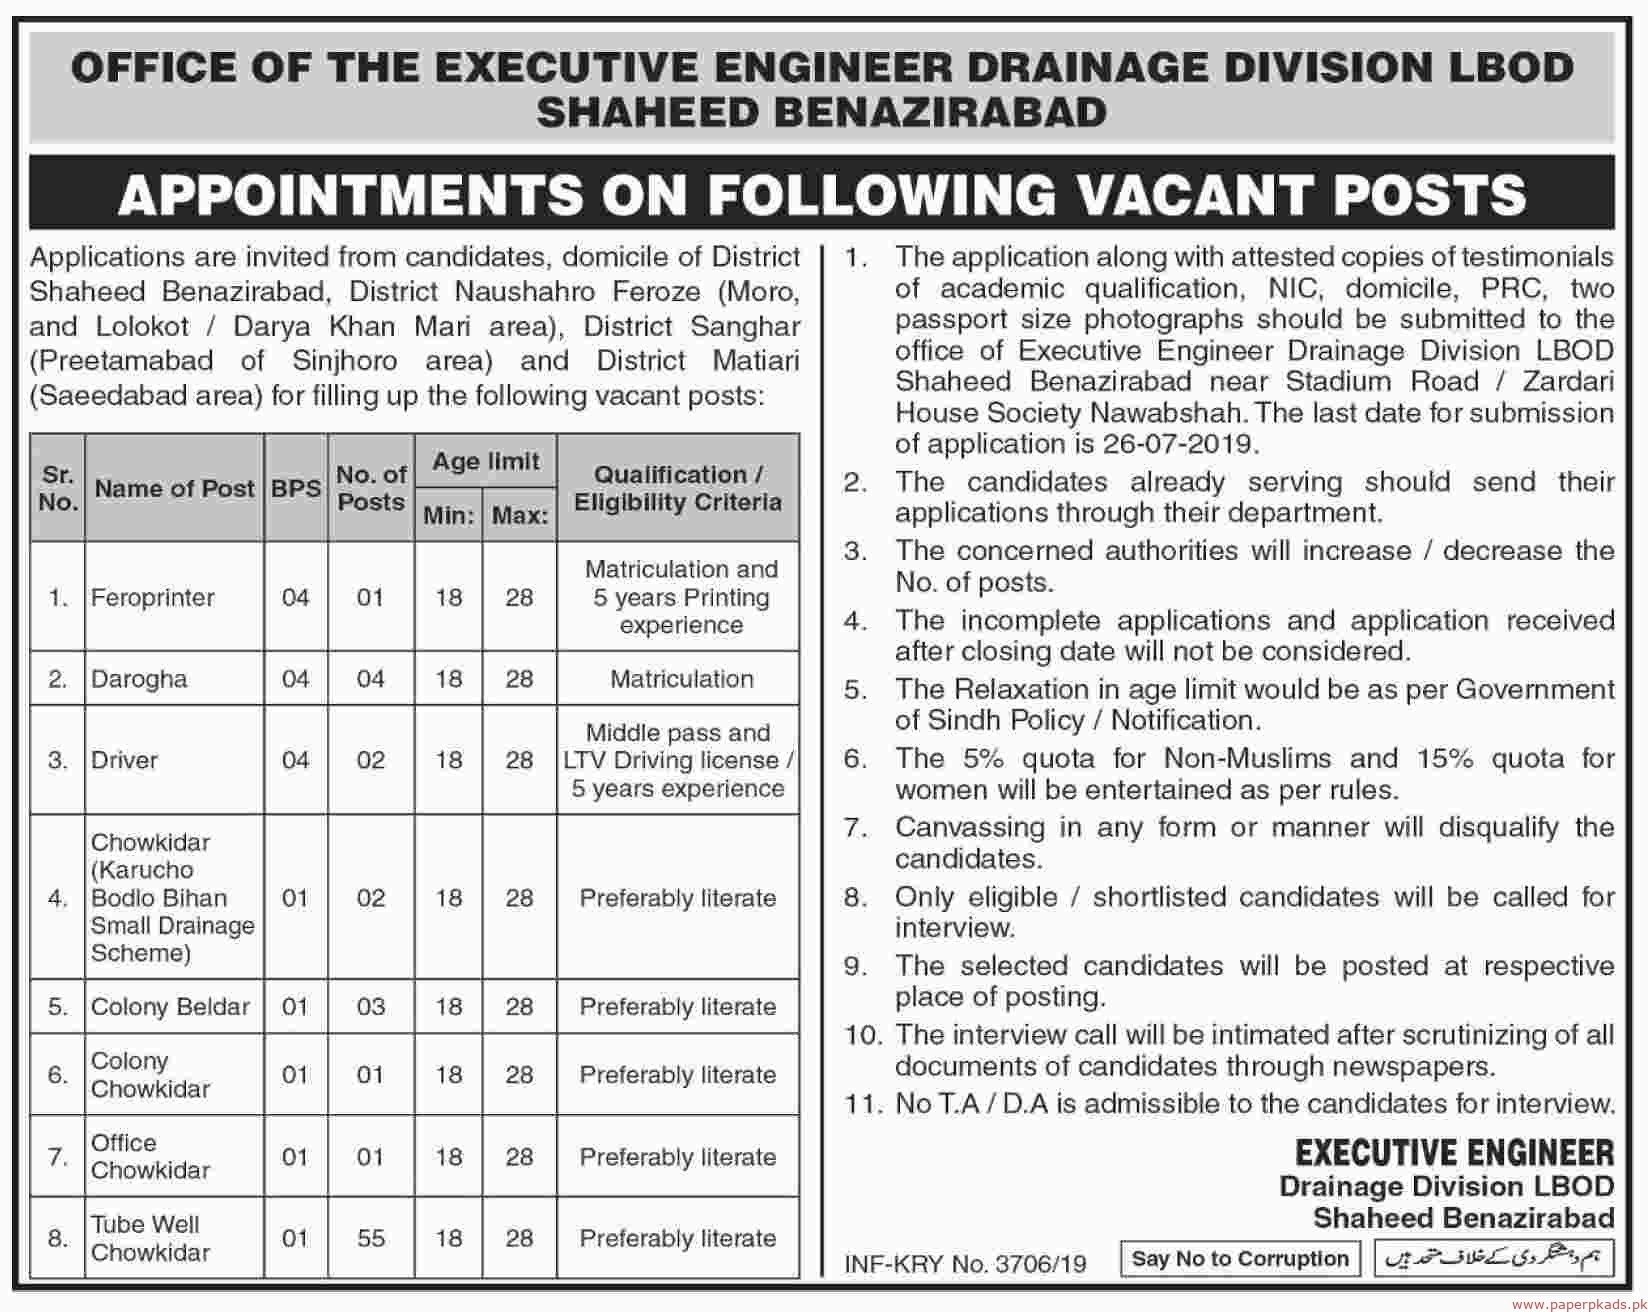 Office of the Executive Engineer Drainage Division LBOD Jobs 2019 Latest